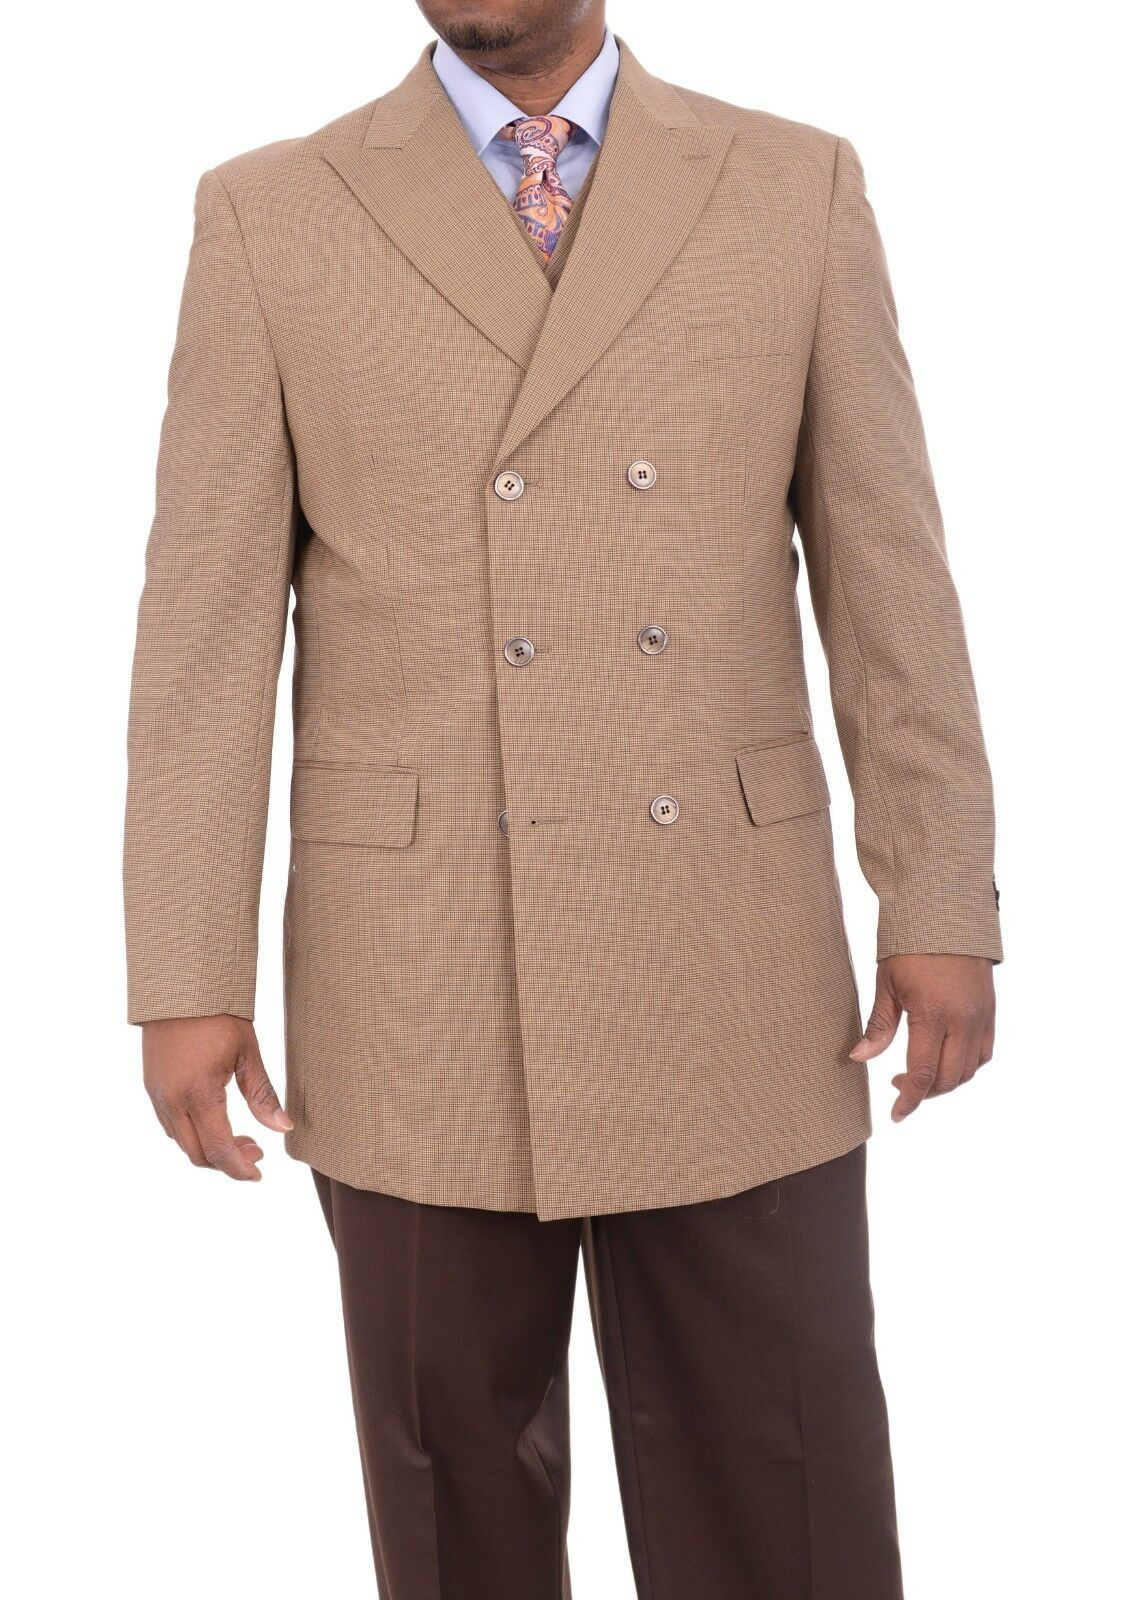 Apollo King Classic Fit Brown Houndstooth 3 Piece Double Breasted Suit 50L 46W